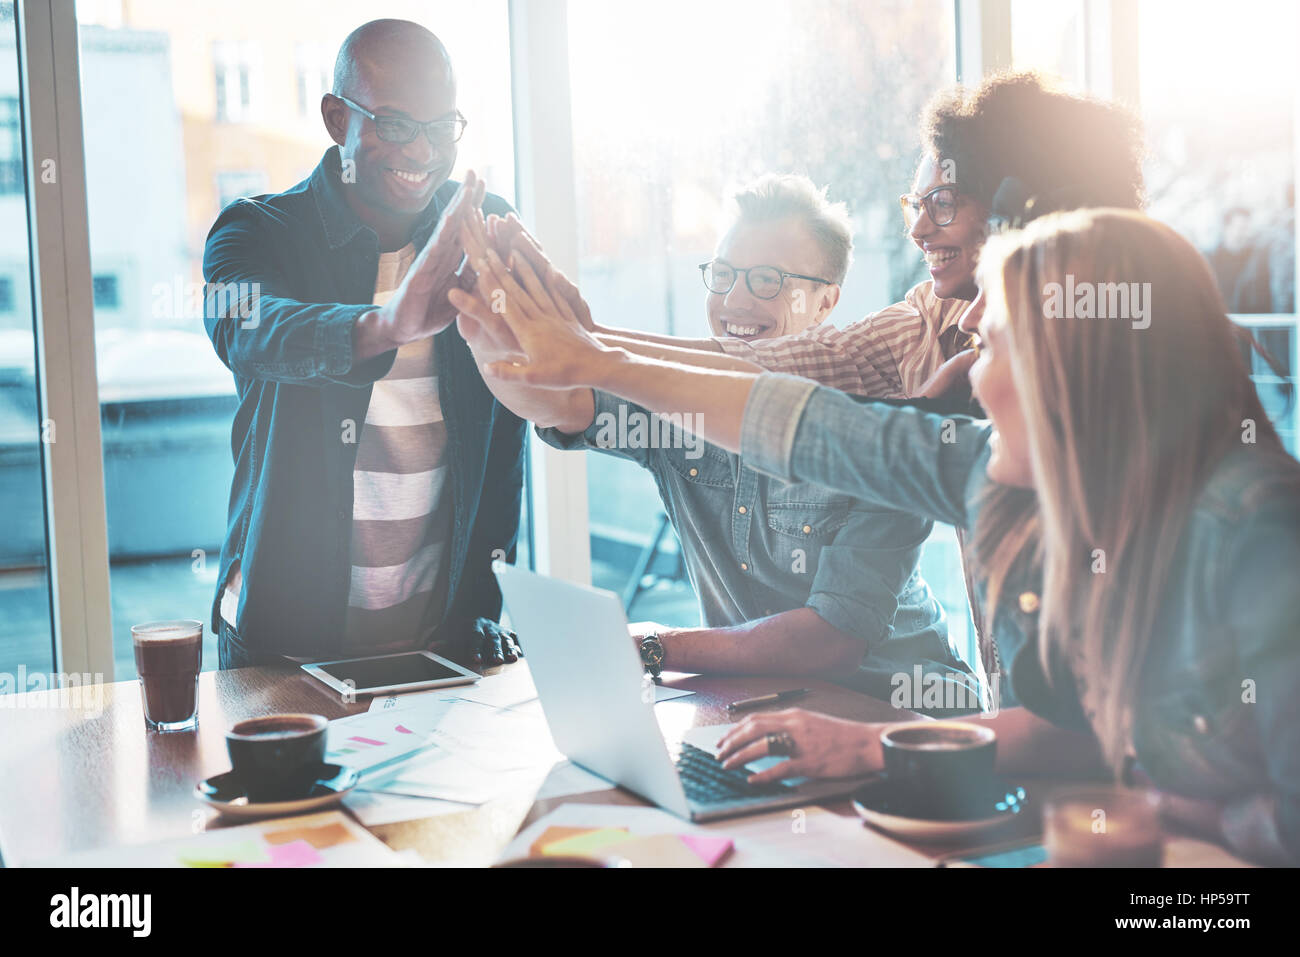 Happy young entrepreneurs in casual clothes at cafe table or in business office giving high fives to each other - Stock Image